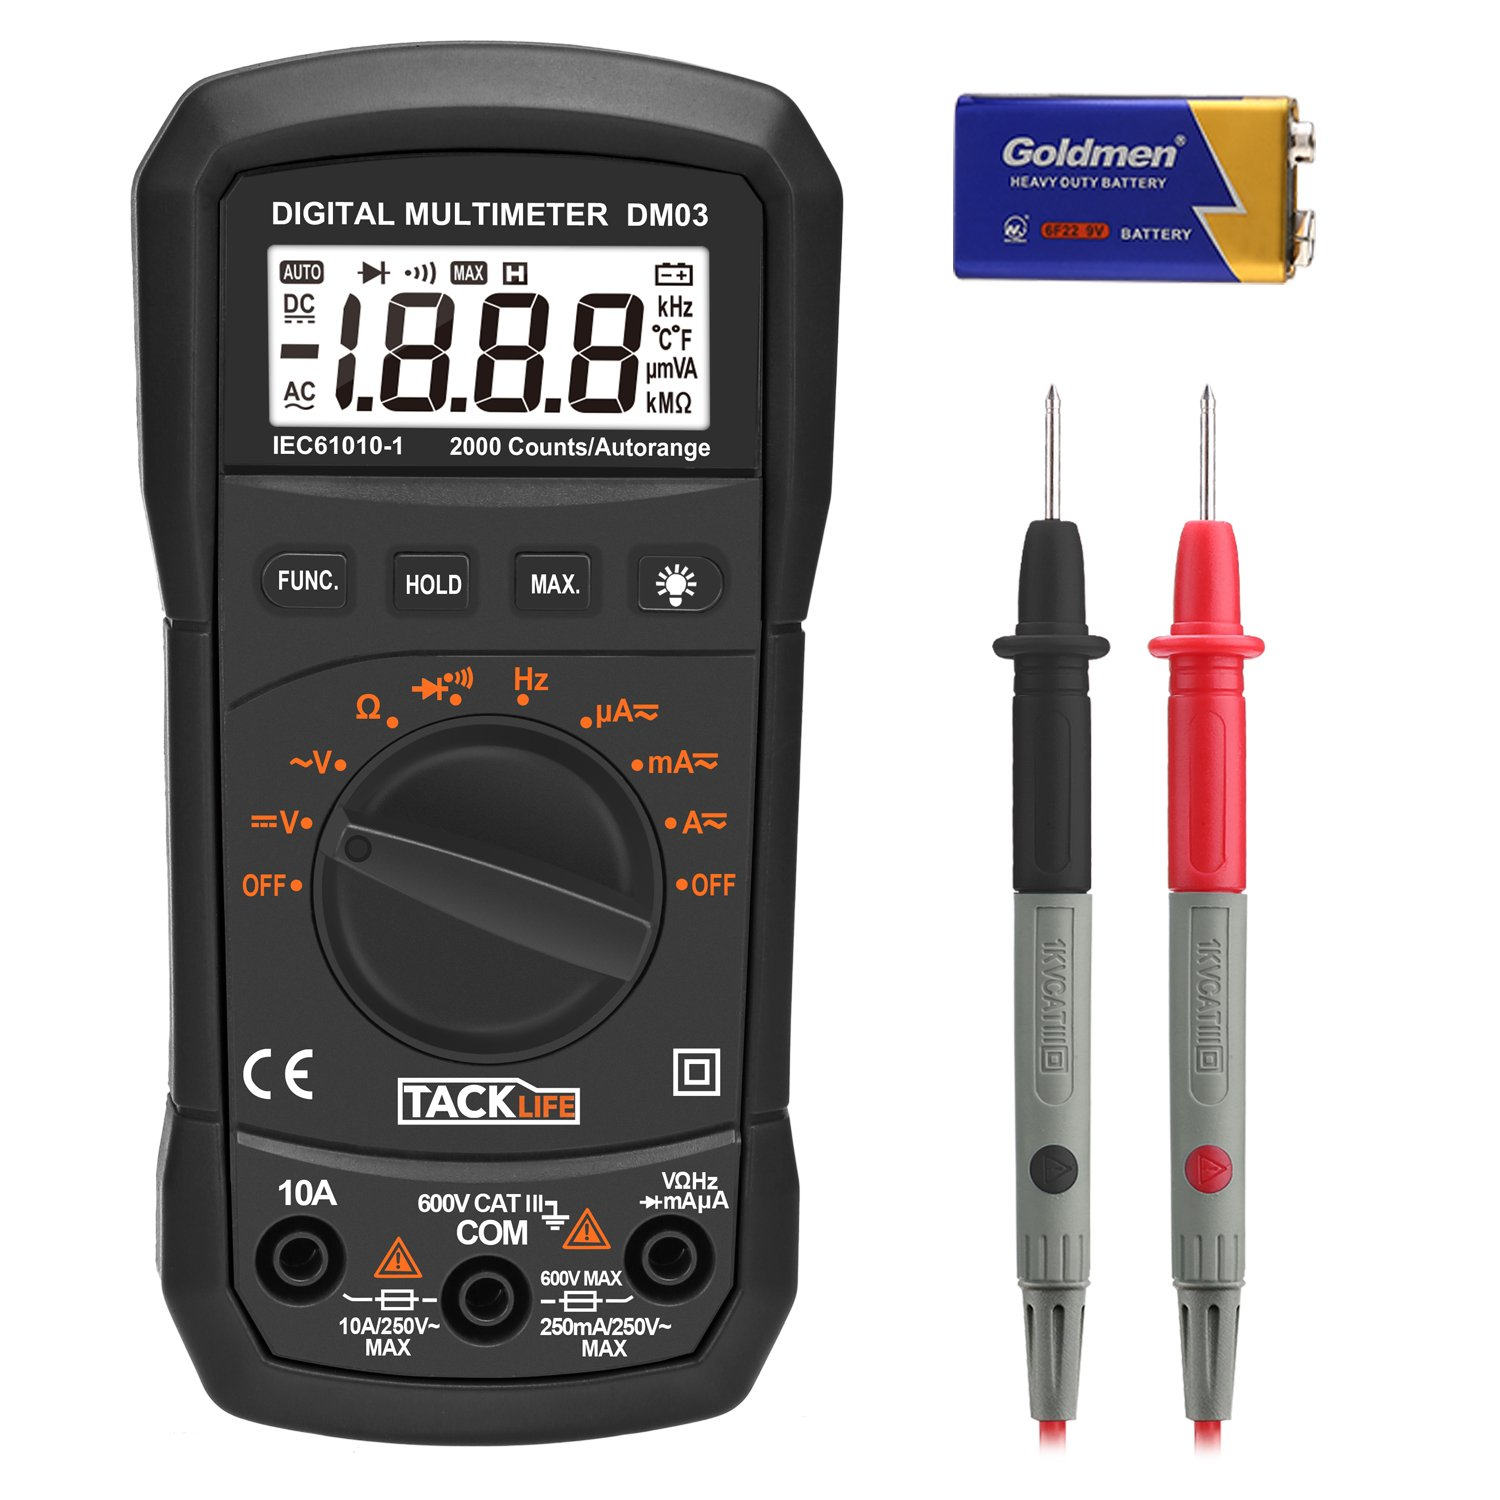 715rkTomNyL._SL1500_ amazon com multimeters & analyzers diagnostic & test tools  at bayanpartner.co